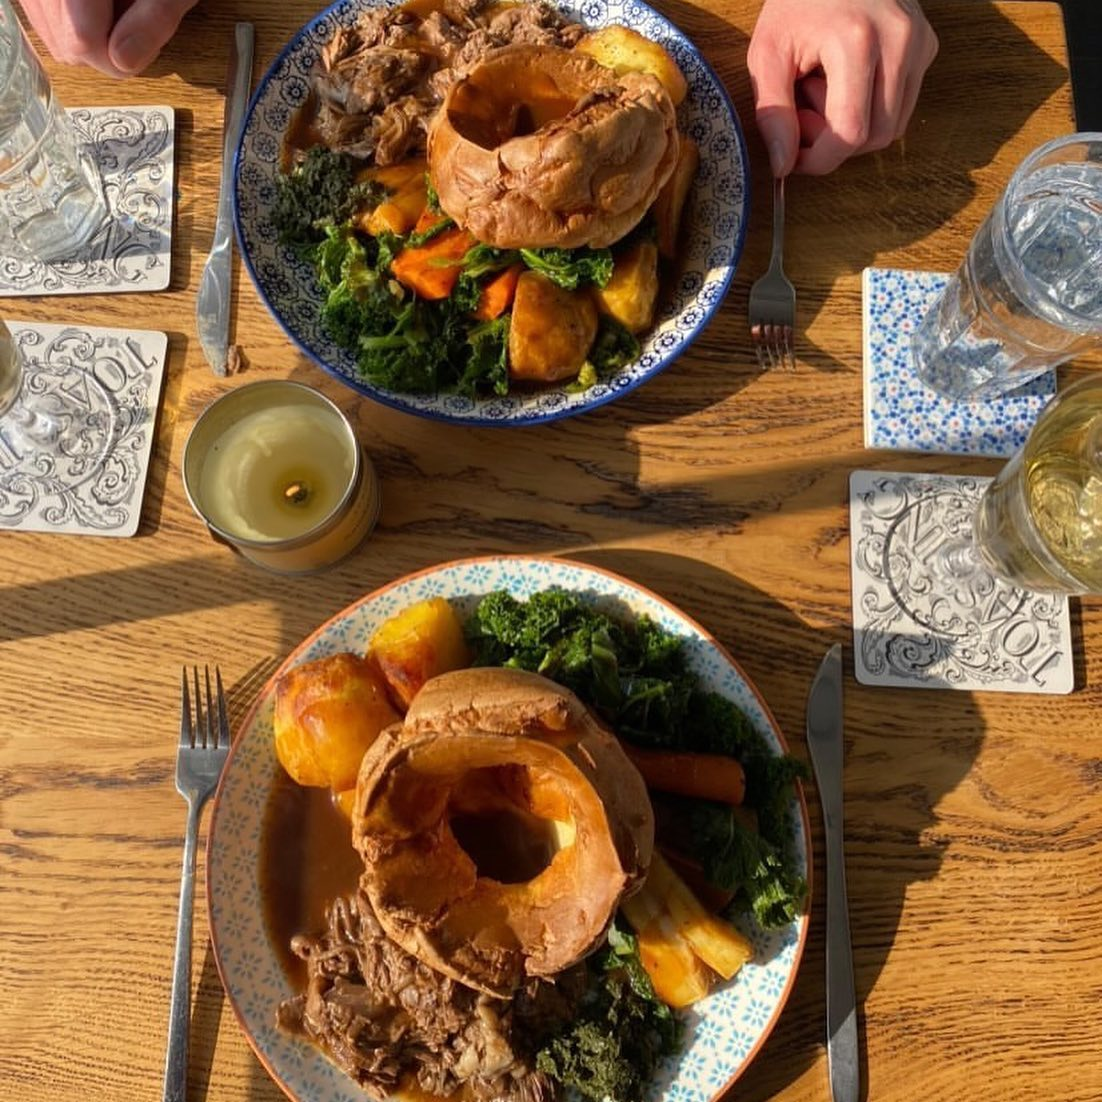 The weekend's nearly here and you know what that means...it's only two days 'til Sunday. 🙌🏼 Treat yourself and let us do the cooking. Swipe left ➡️ and let us tempt you some more..... 🍽🦙🧑🏼🍳😋🙌🏼  #takeawayroast #sundayroast #sundaygoals #supportlocal #canonbury #londonfoodies #foodporn #pubsofinstagram #pubsoflondon #pubstagram #yorkshirepudding #yorkshirepuddings #supportsmallbusiness #hackney #londonpubs #islingtonpubs #vegetarianroast #veggieroast #veganroast #veganroastdinner #islington #islingtonlife #islingtonmums #mothersday #motheringsunday